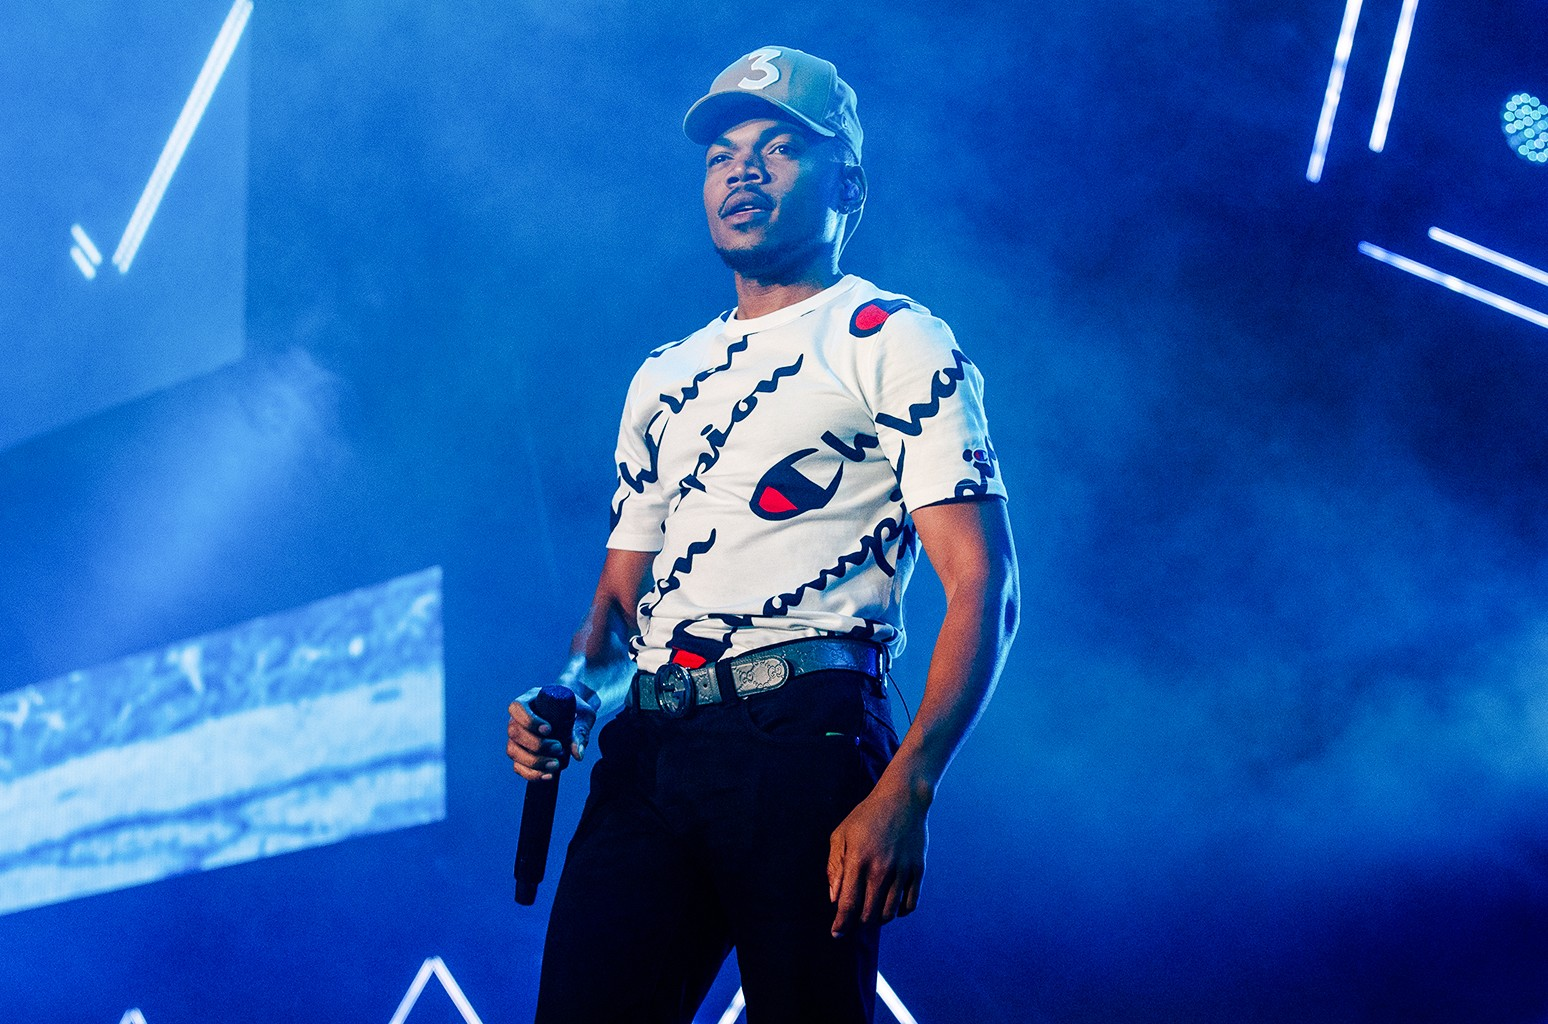 Chance The Rapper performs at 2017 Essence Festival at the Mercedes-Benz Superdome on July 2, 2017 in New Orleans.